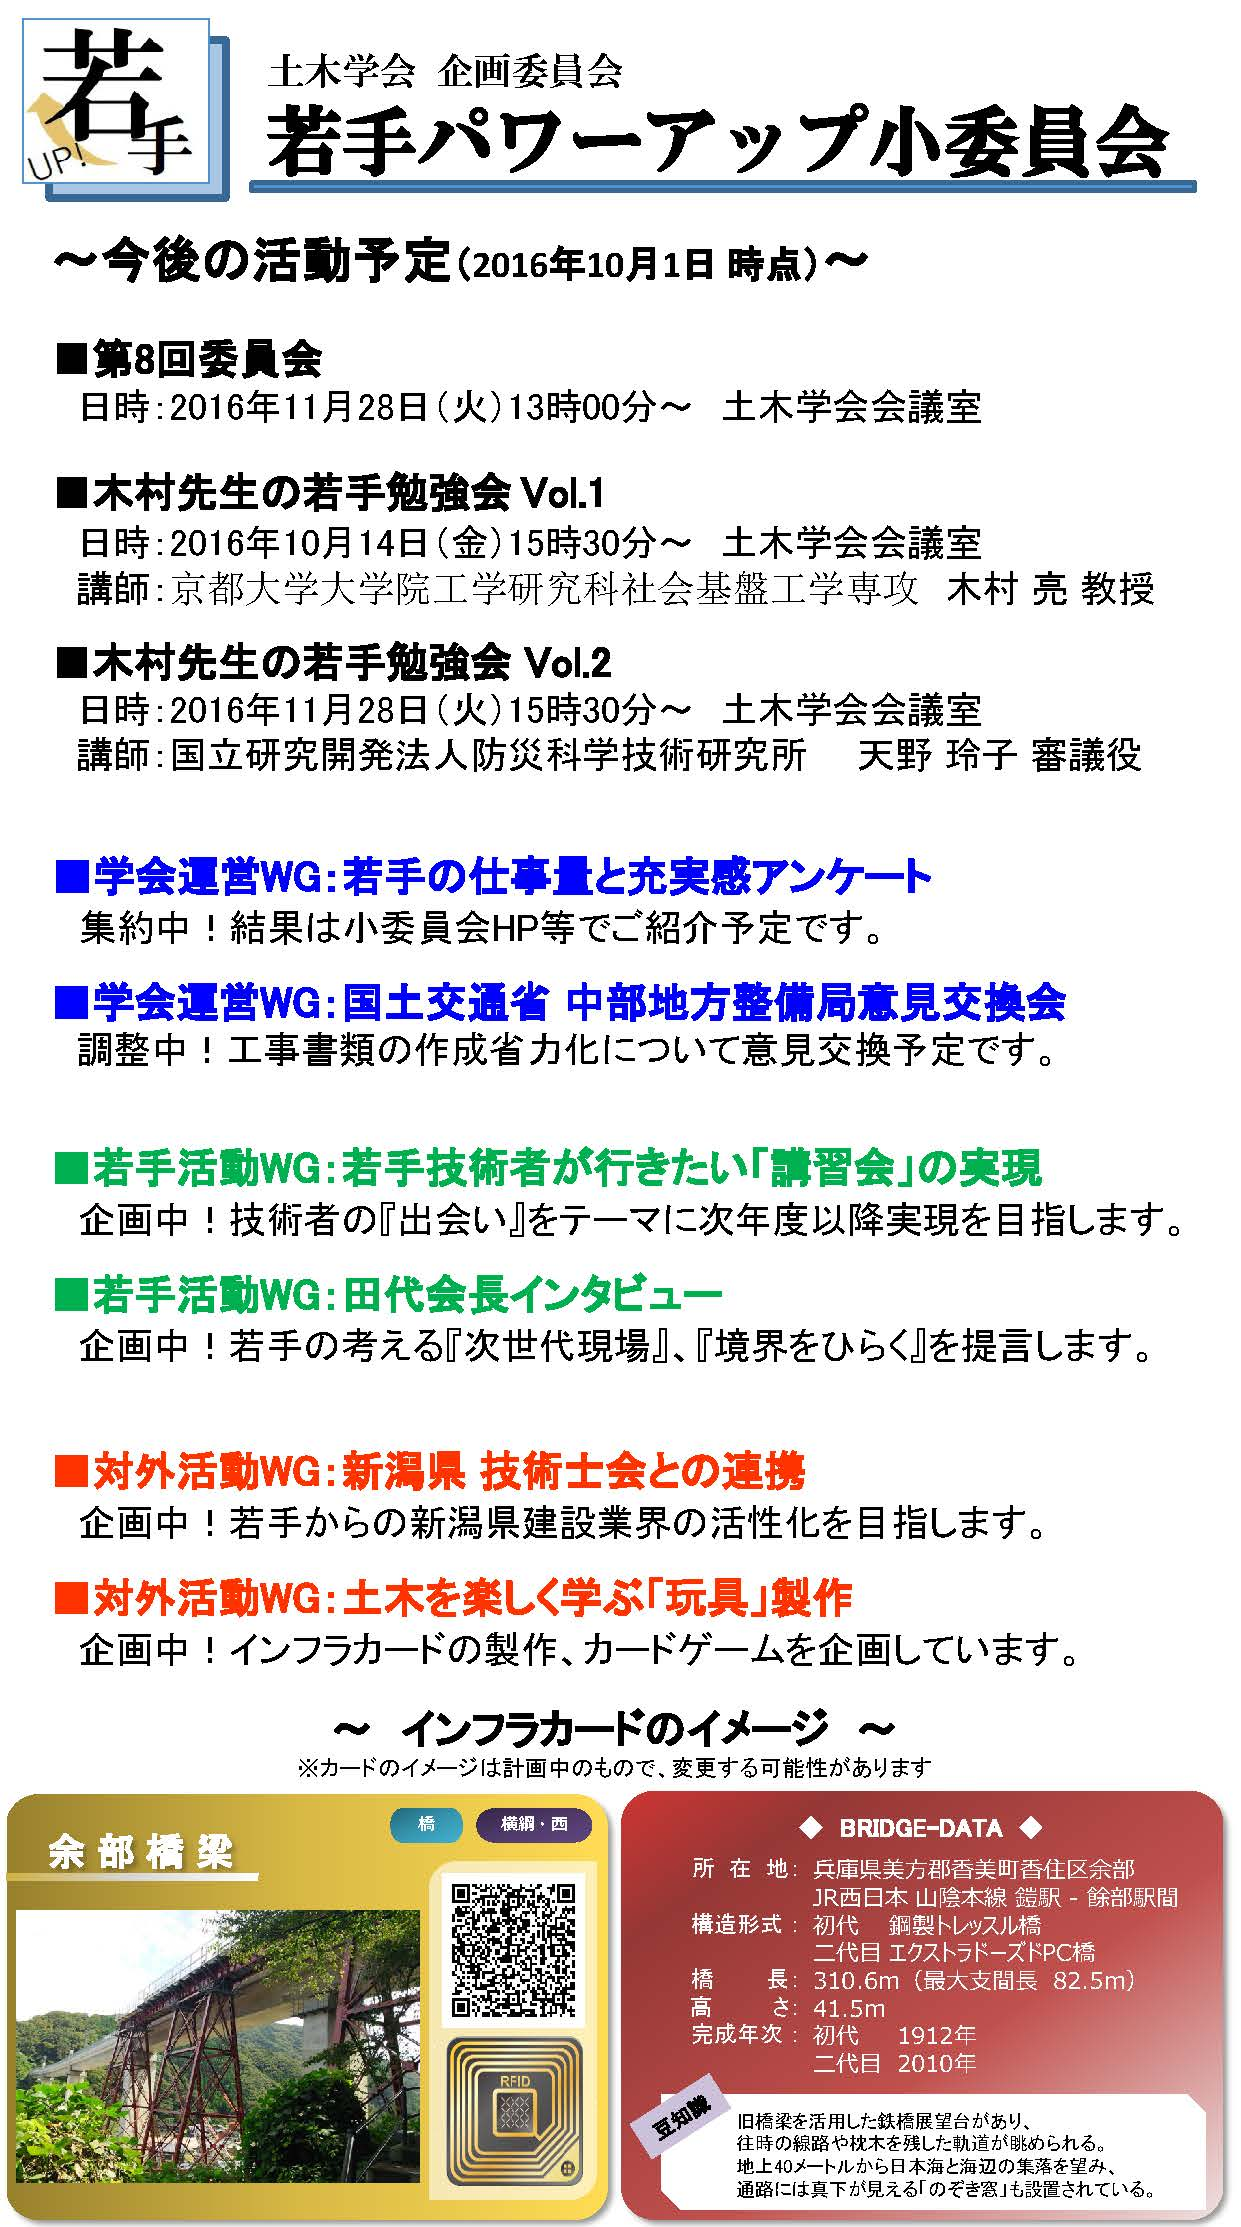 http://committees.jsce.or.jp/kikaku03/system/files/wakateactivity-2_0.jpg